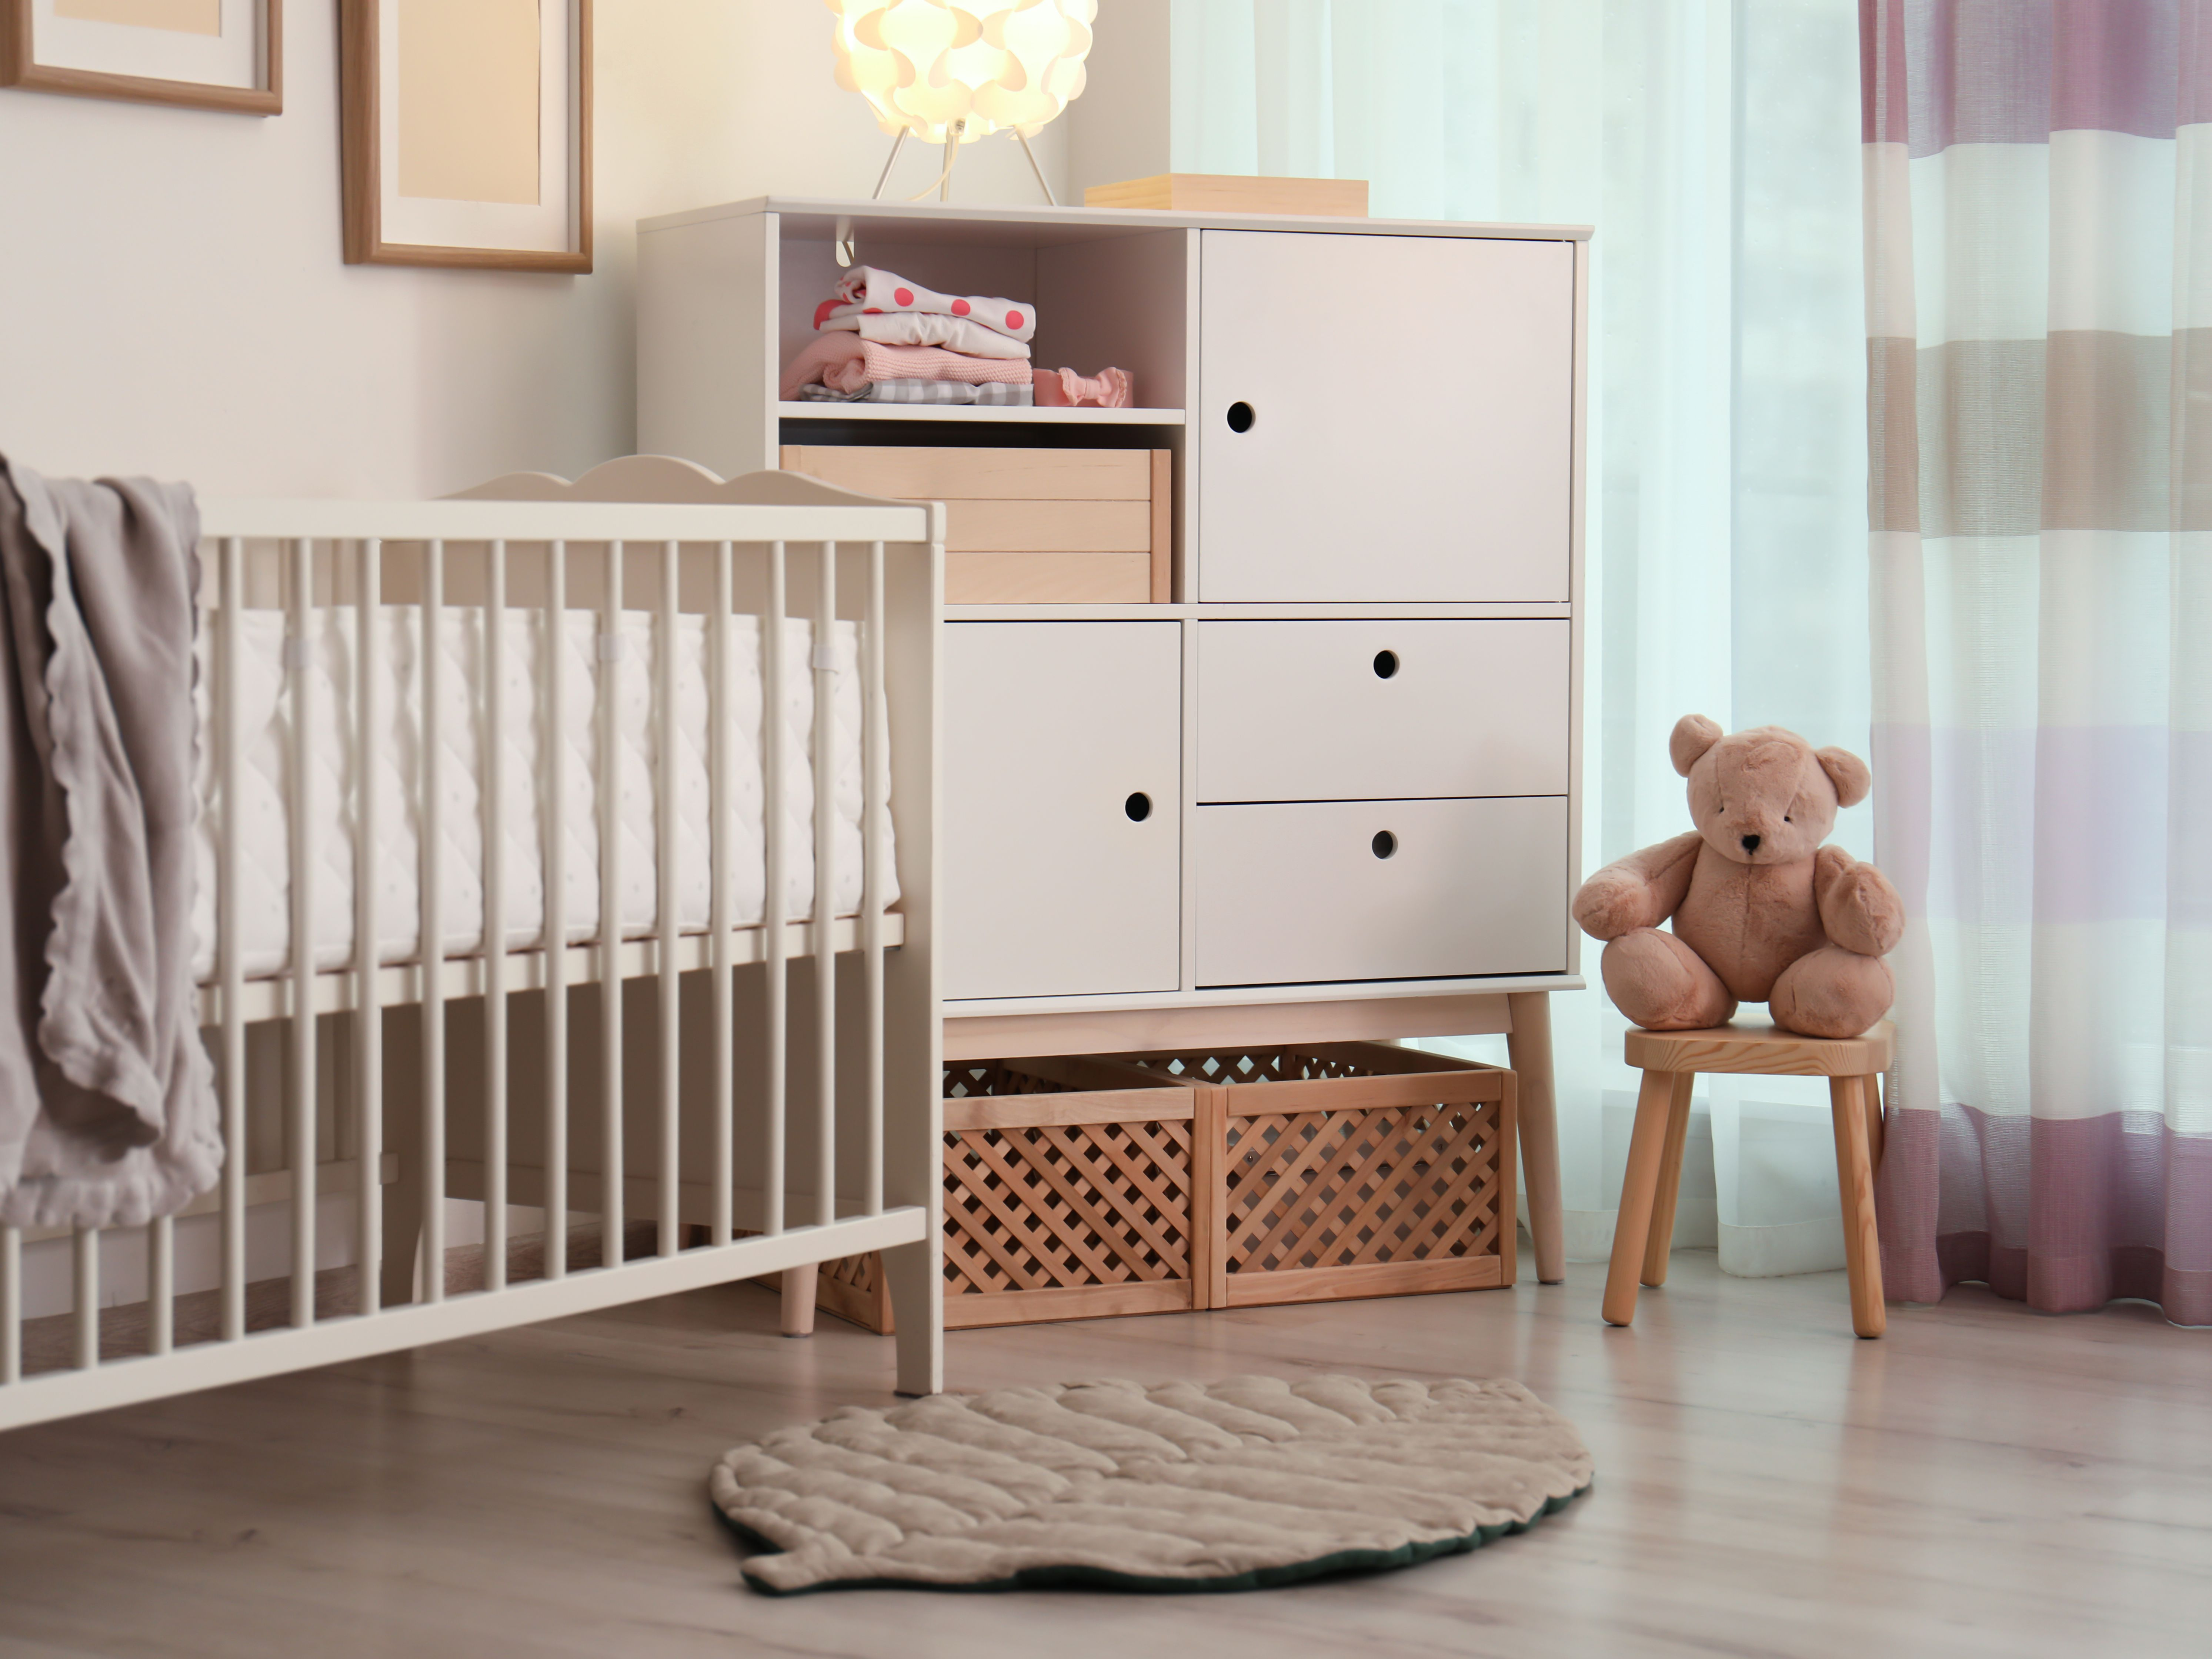 Nursery Decorating Ideas On A Budget from www.thespruce.com